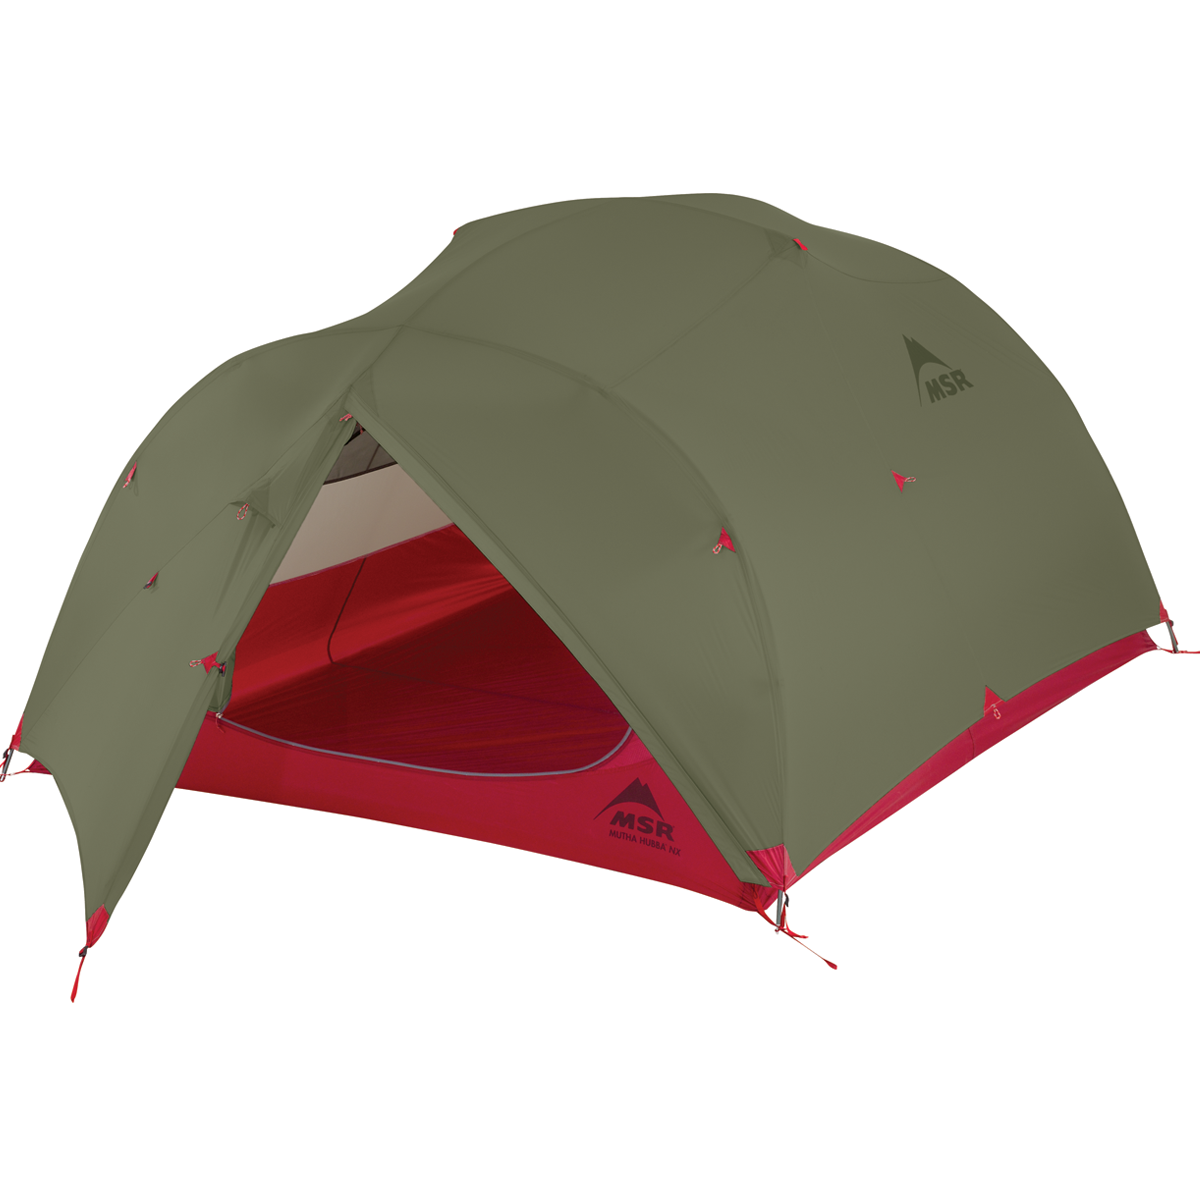 MSR Mutha Hubba NX - 3 Persoons Tent - Groen